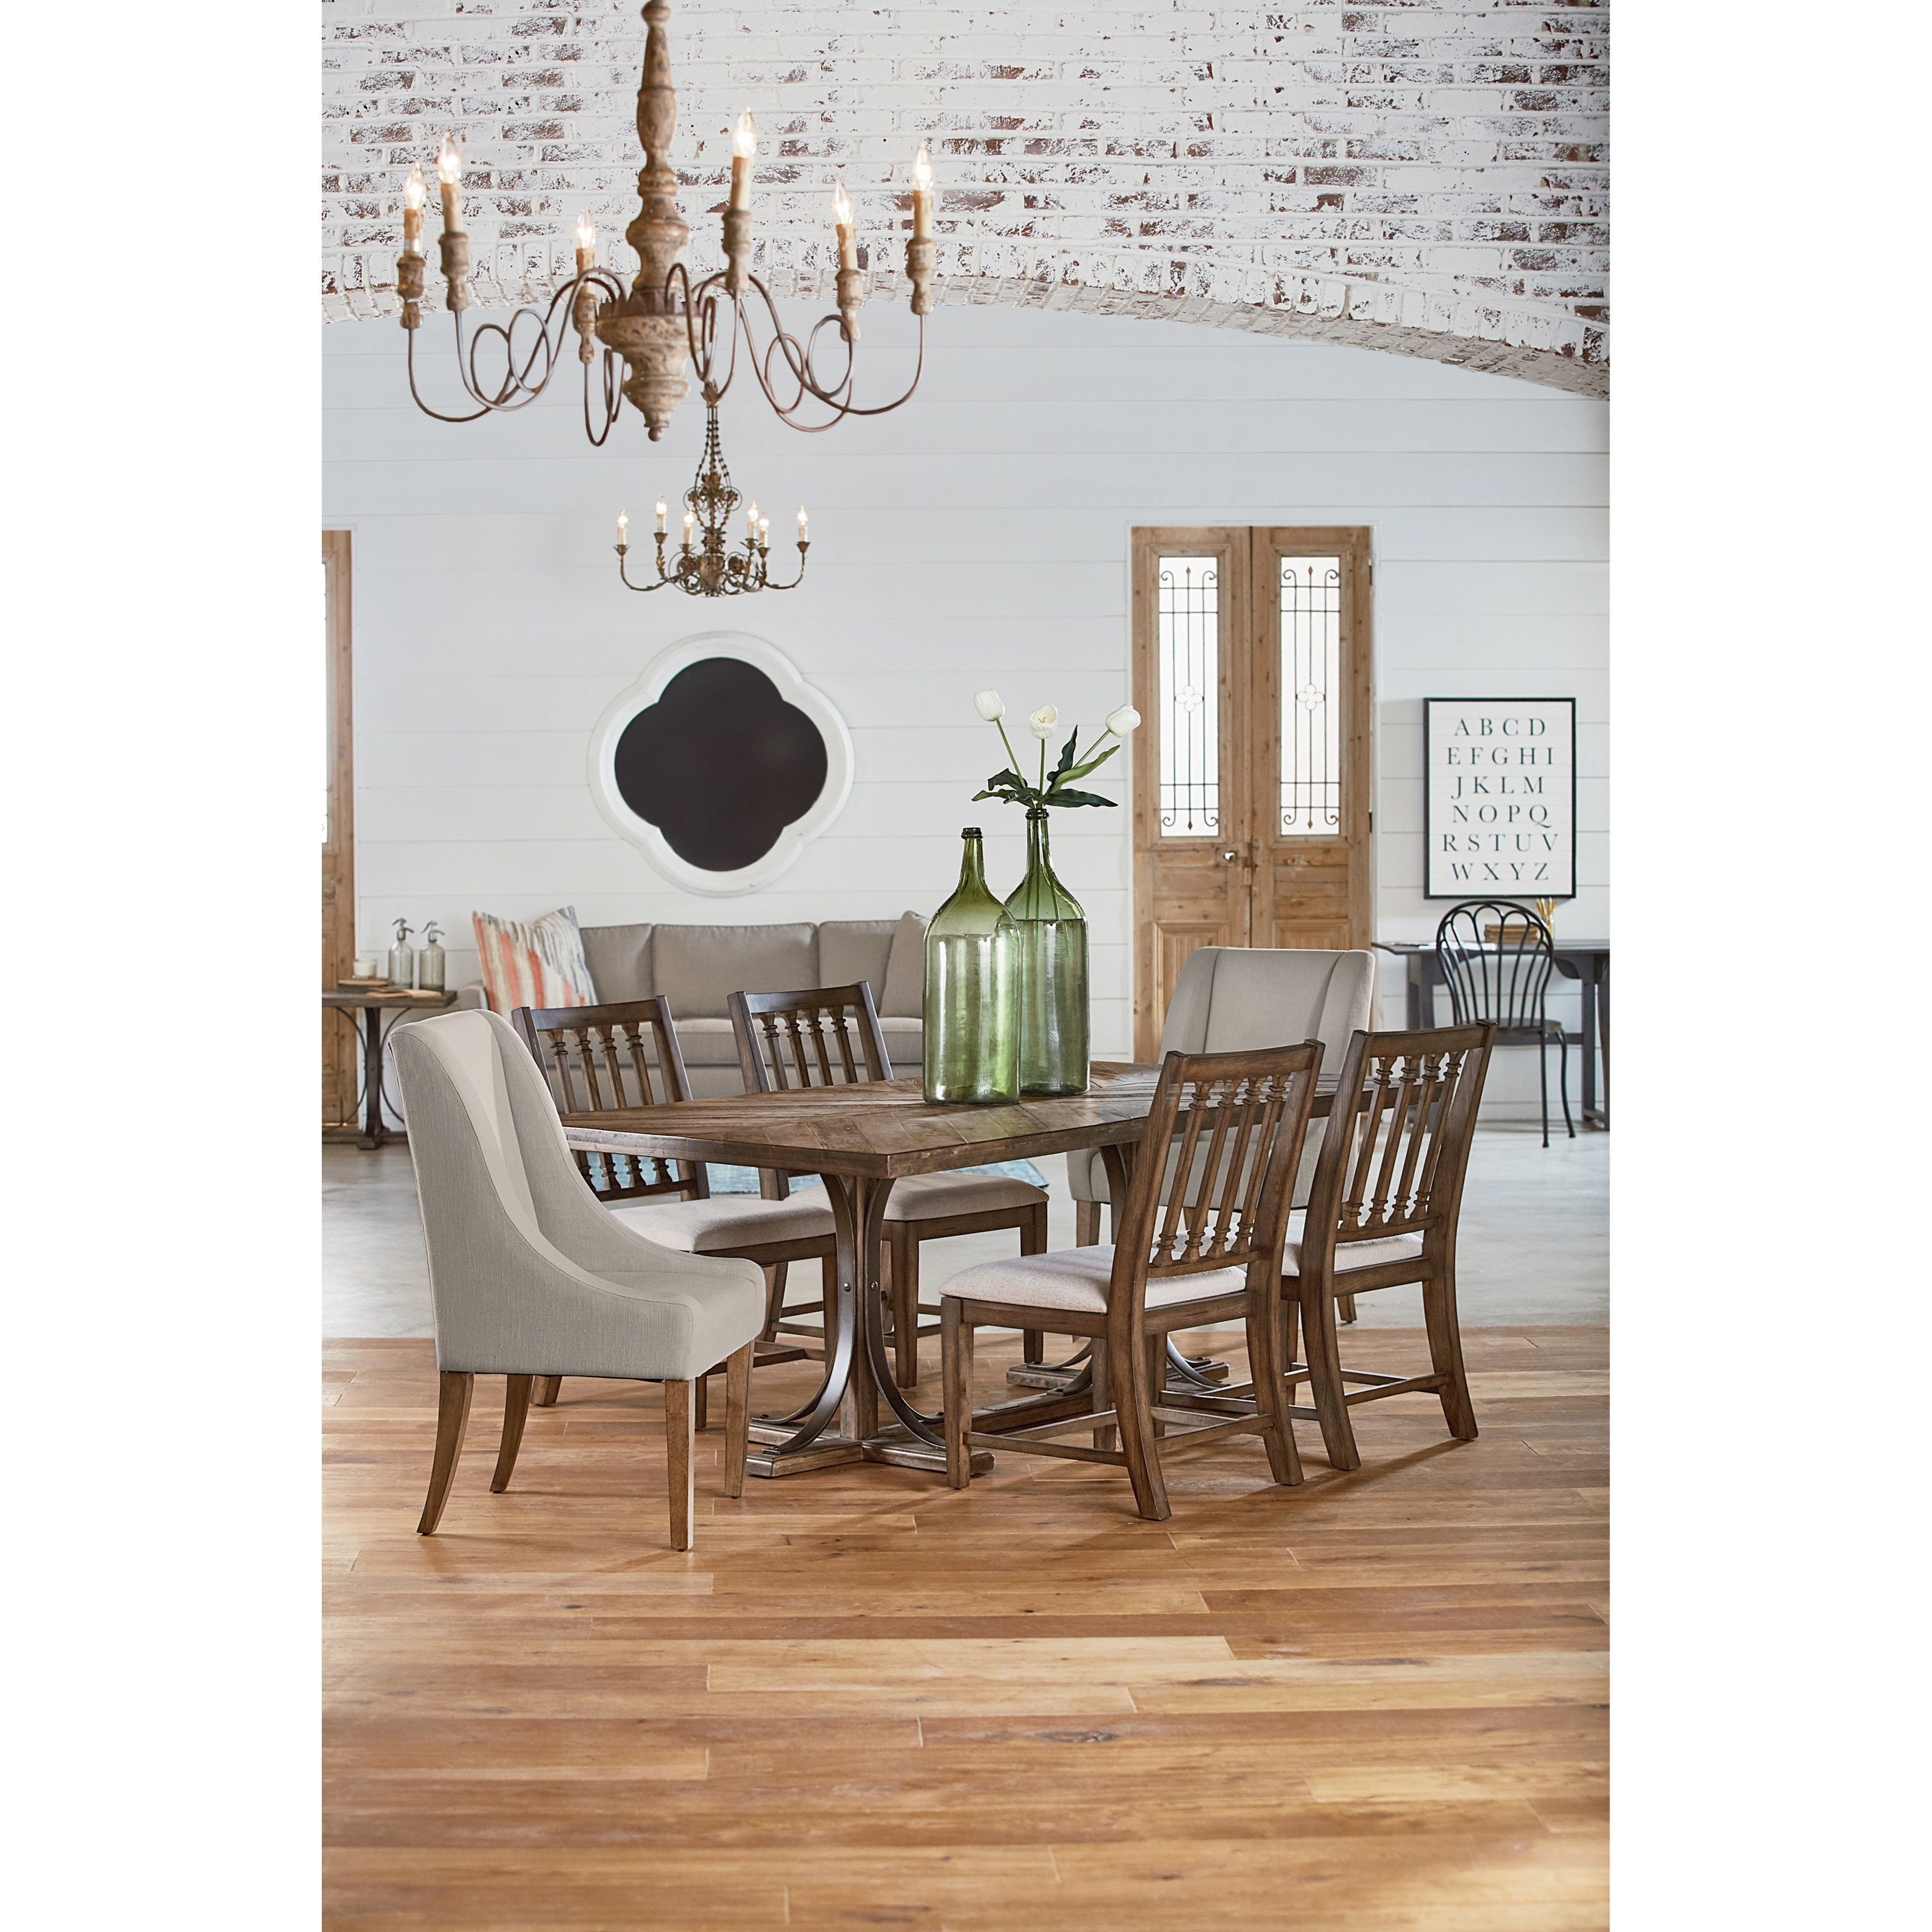 Magnolia Home By Joanna Gaines Traditional Dining With Revival Chairs